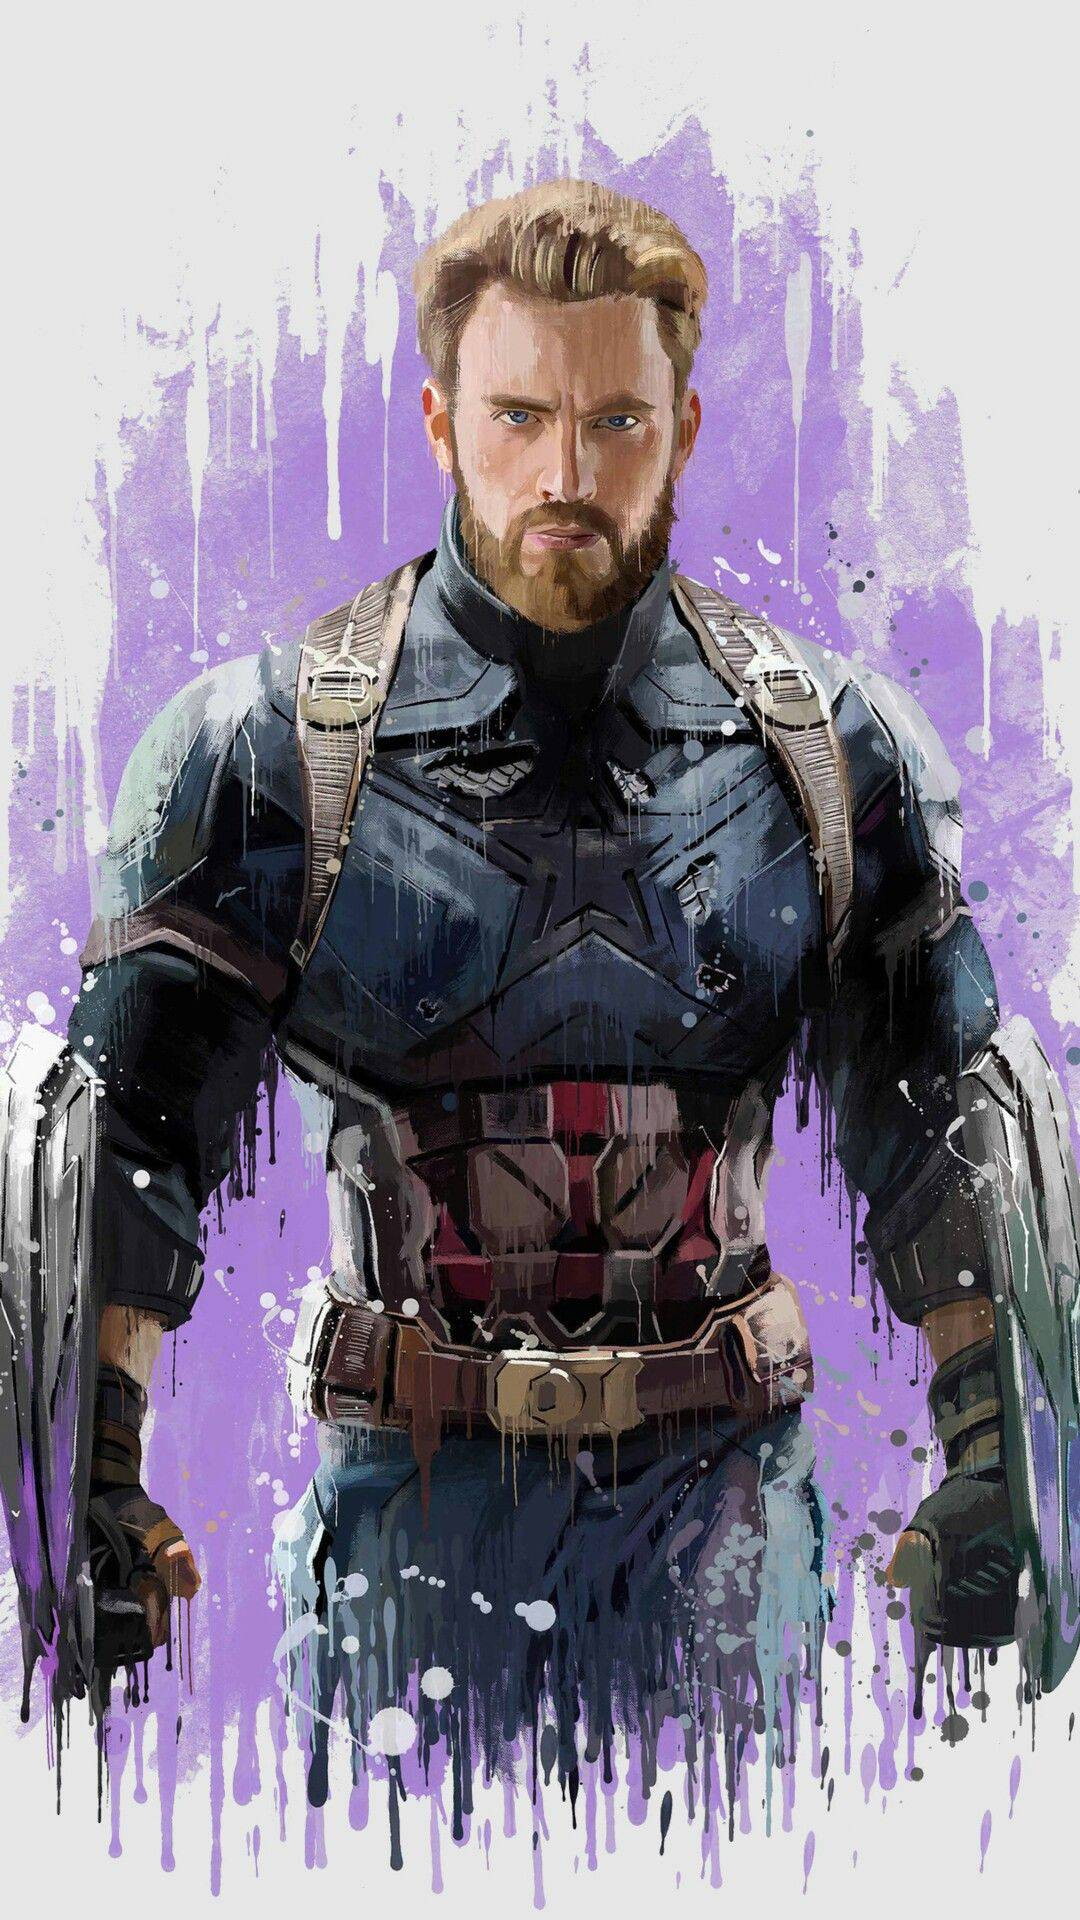 Captain America Avengers Art iPhone Wallpaper